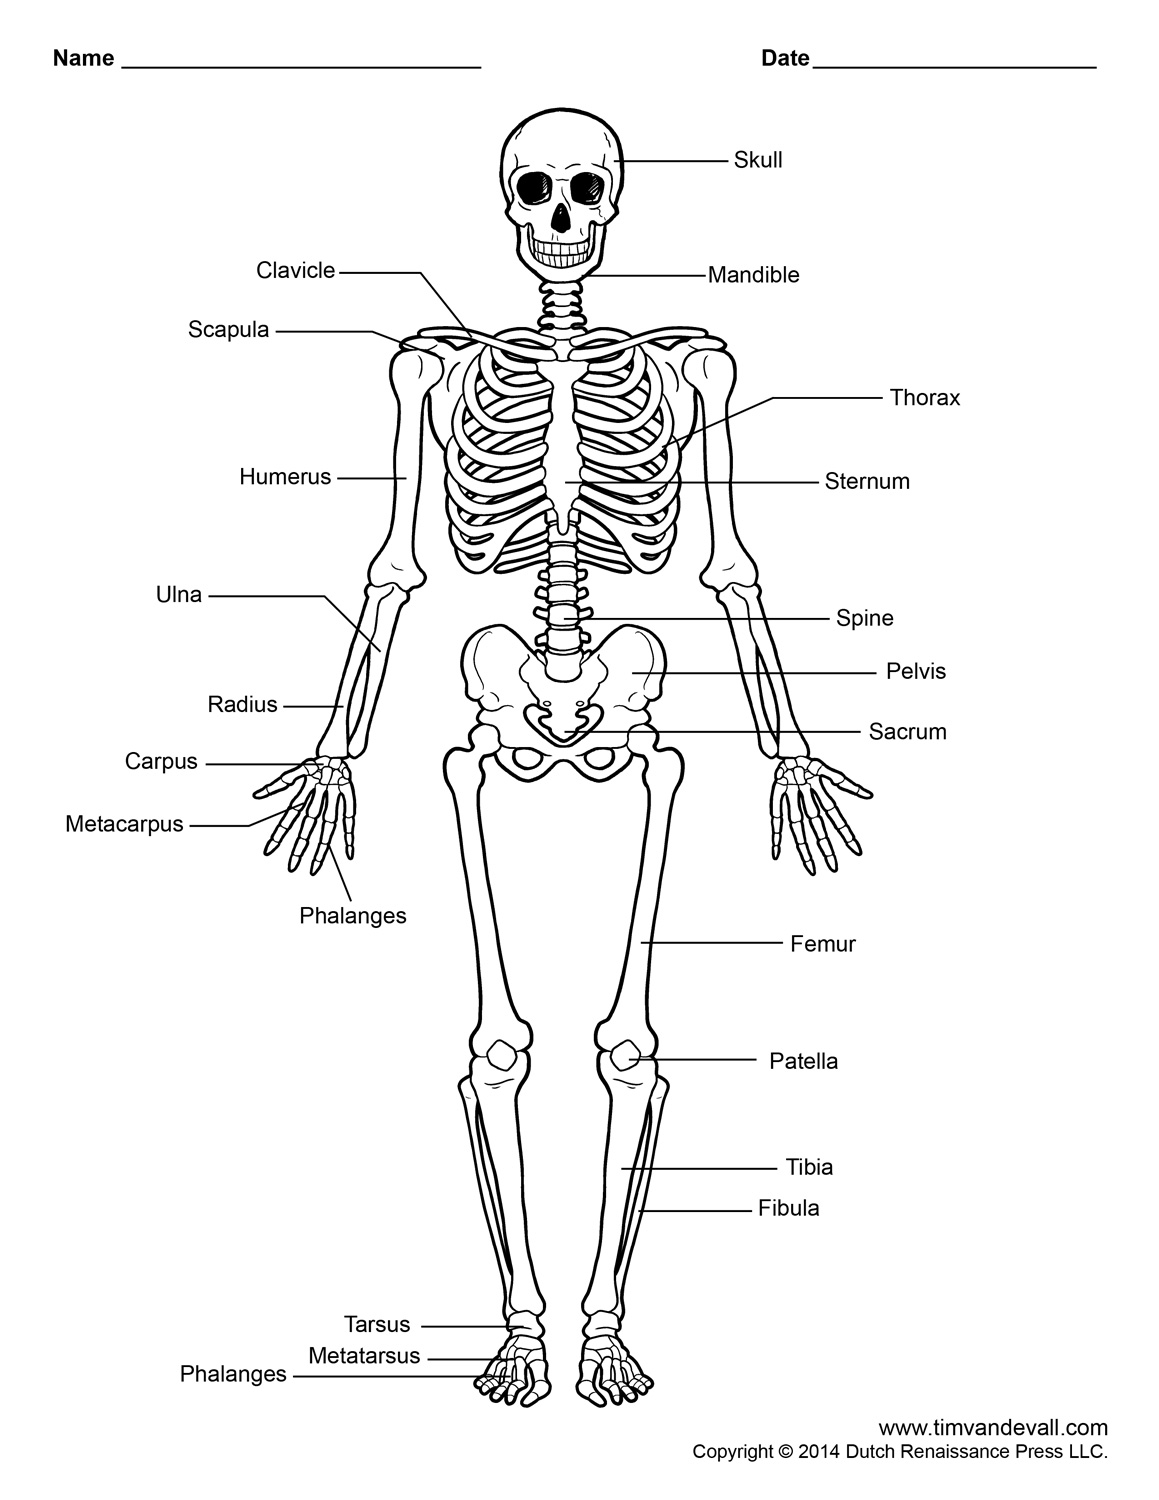 Printable Human Skeleton Diagram - Labeled, Unlabeled, and Blank